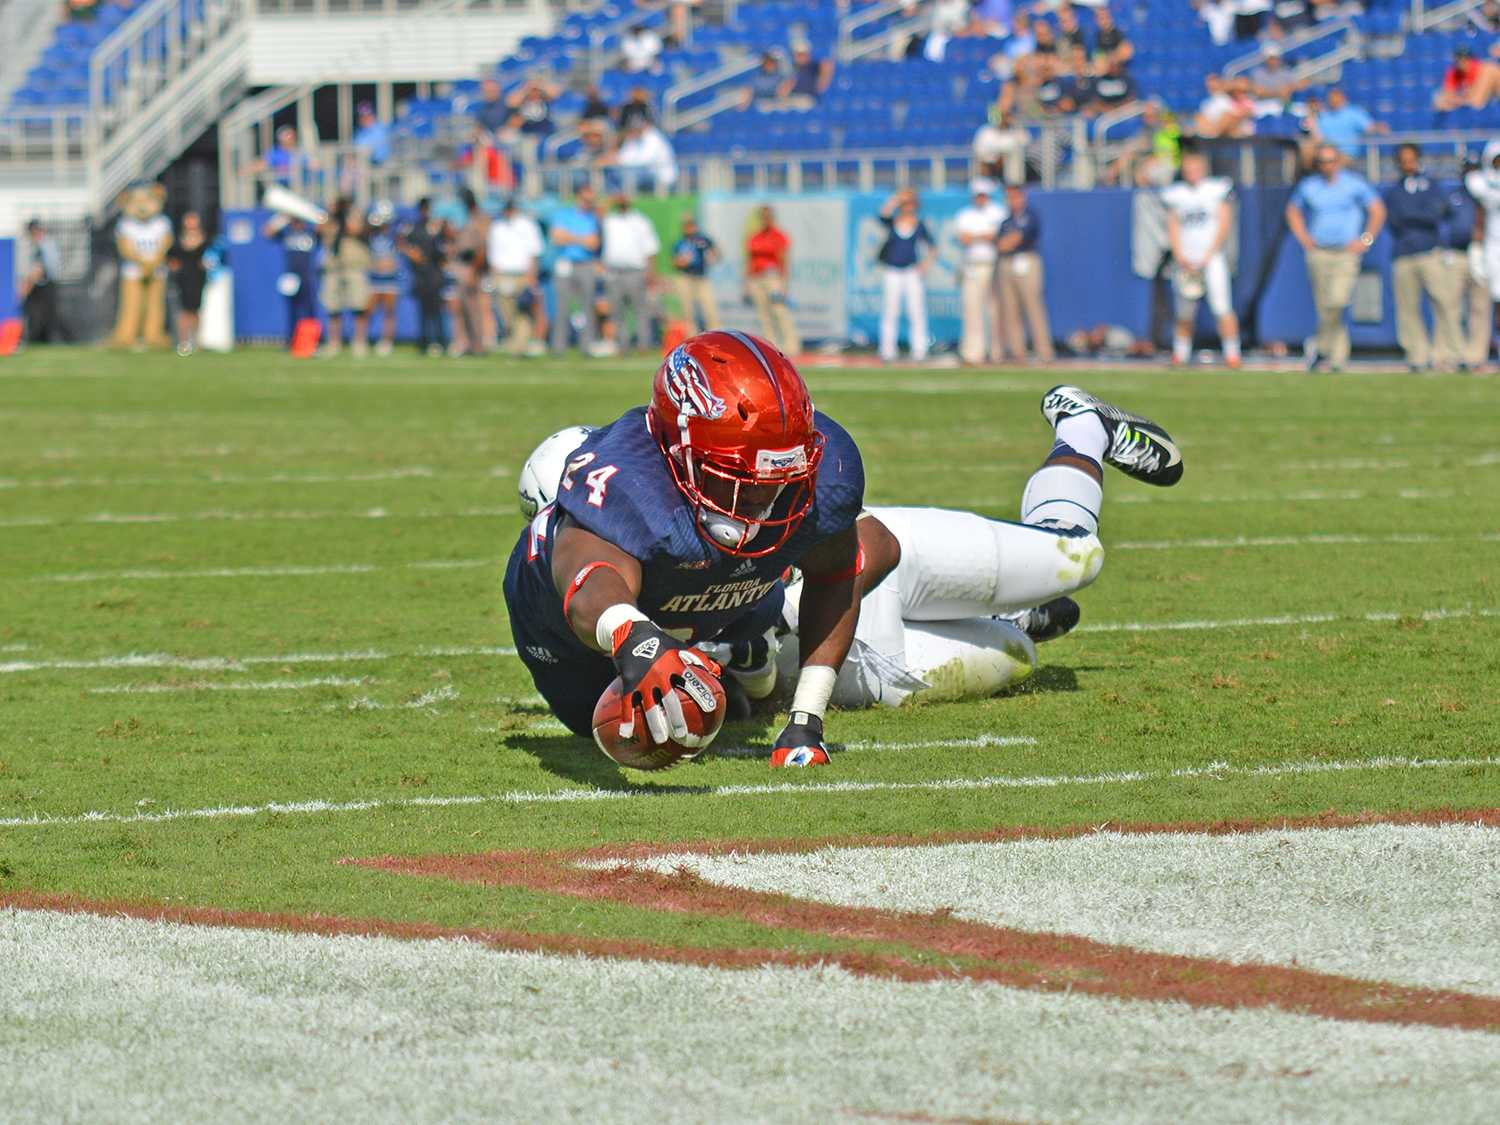 Senior running back Tony Moore scores the Owls' first touchdown against Old Dominion. Moore led the team in rushing with 83 yards.